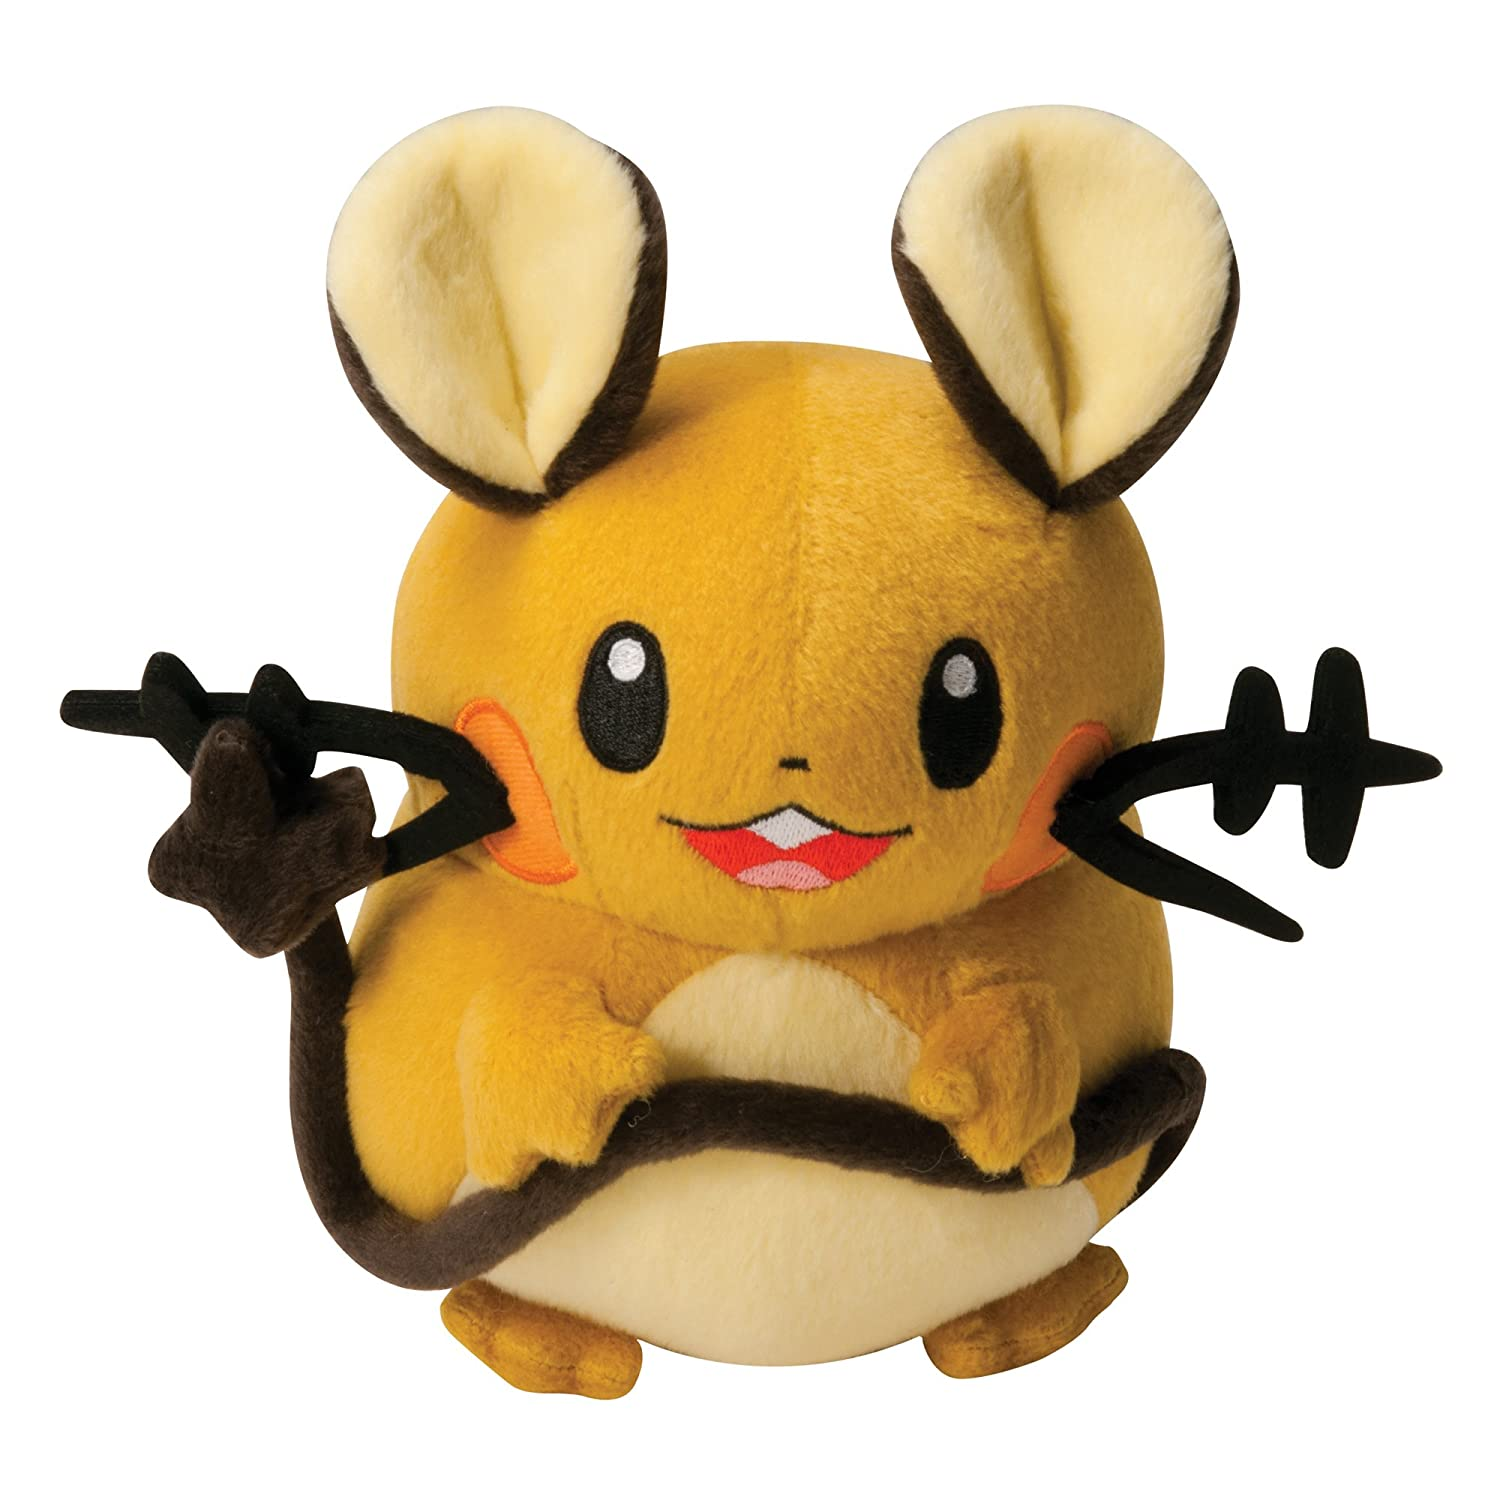 Pokémon Small Plush Dedenne